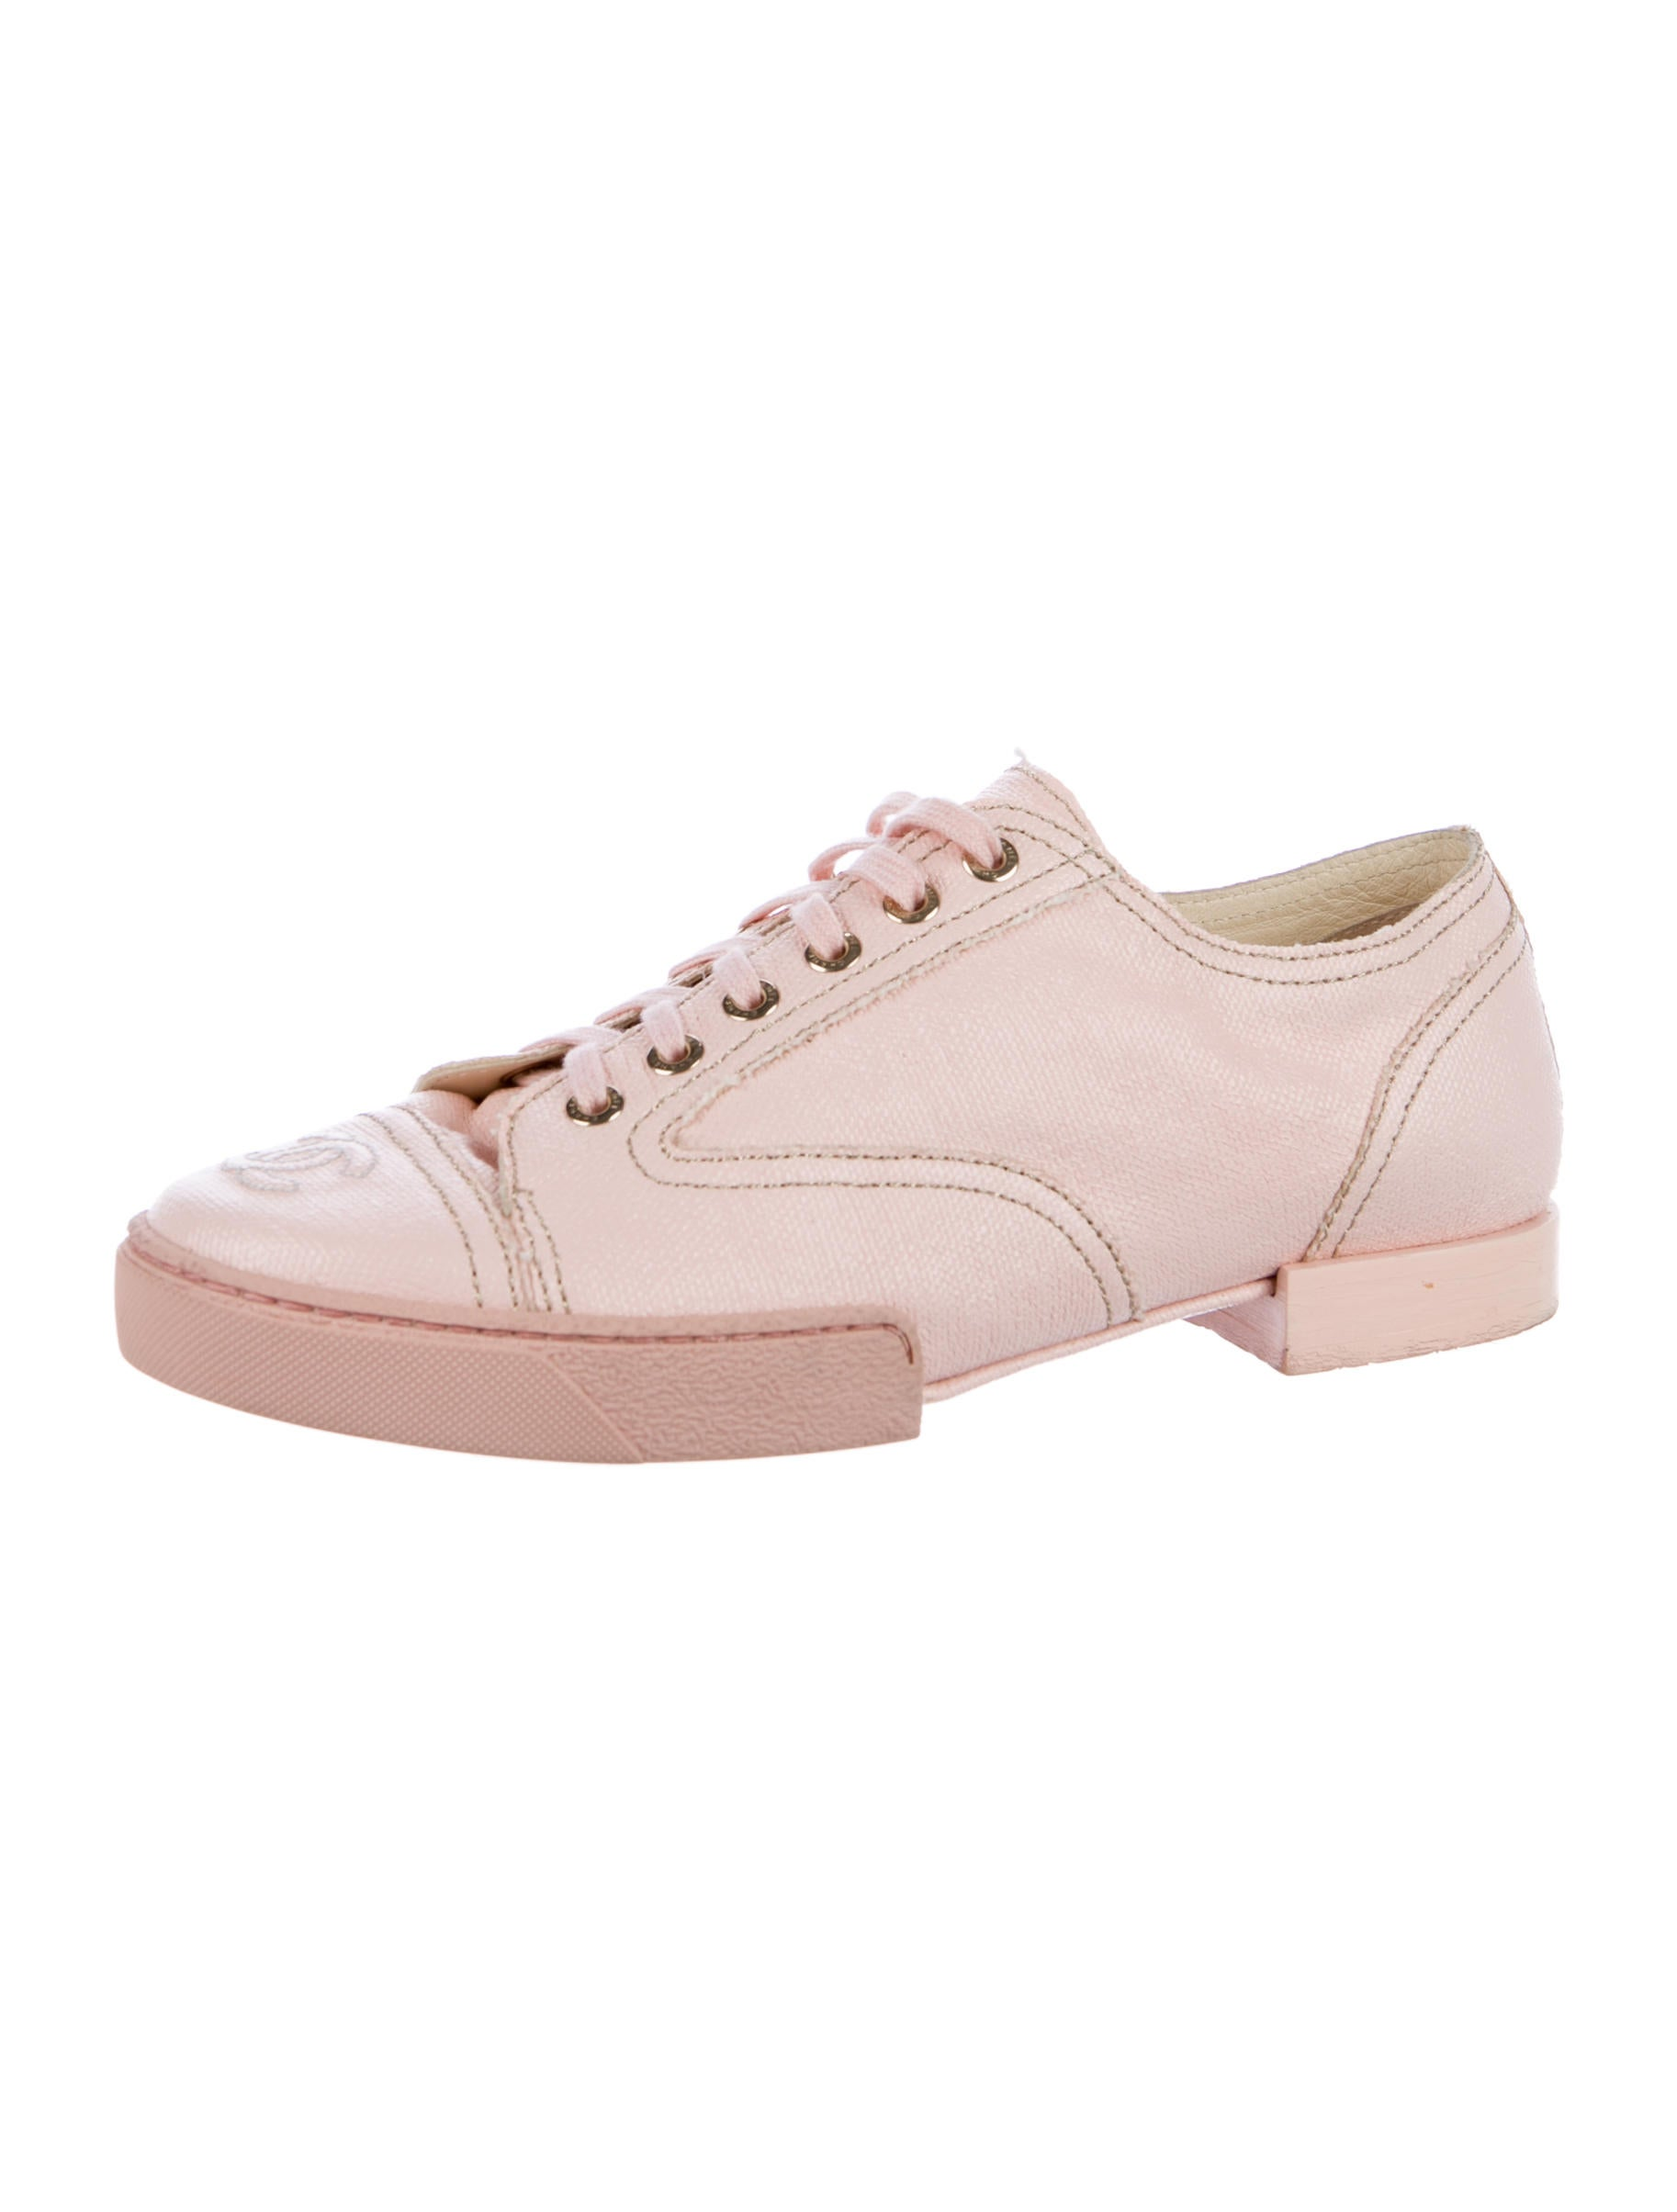 chanel cc canvas oxfords shoes cha198926 the realreal